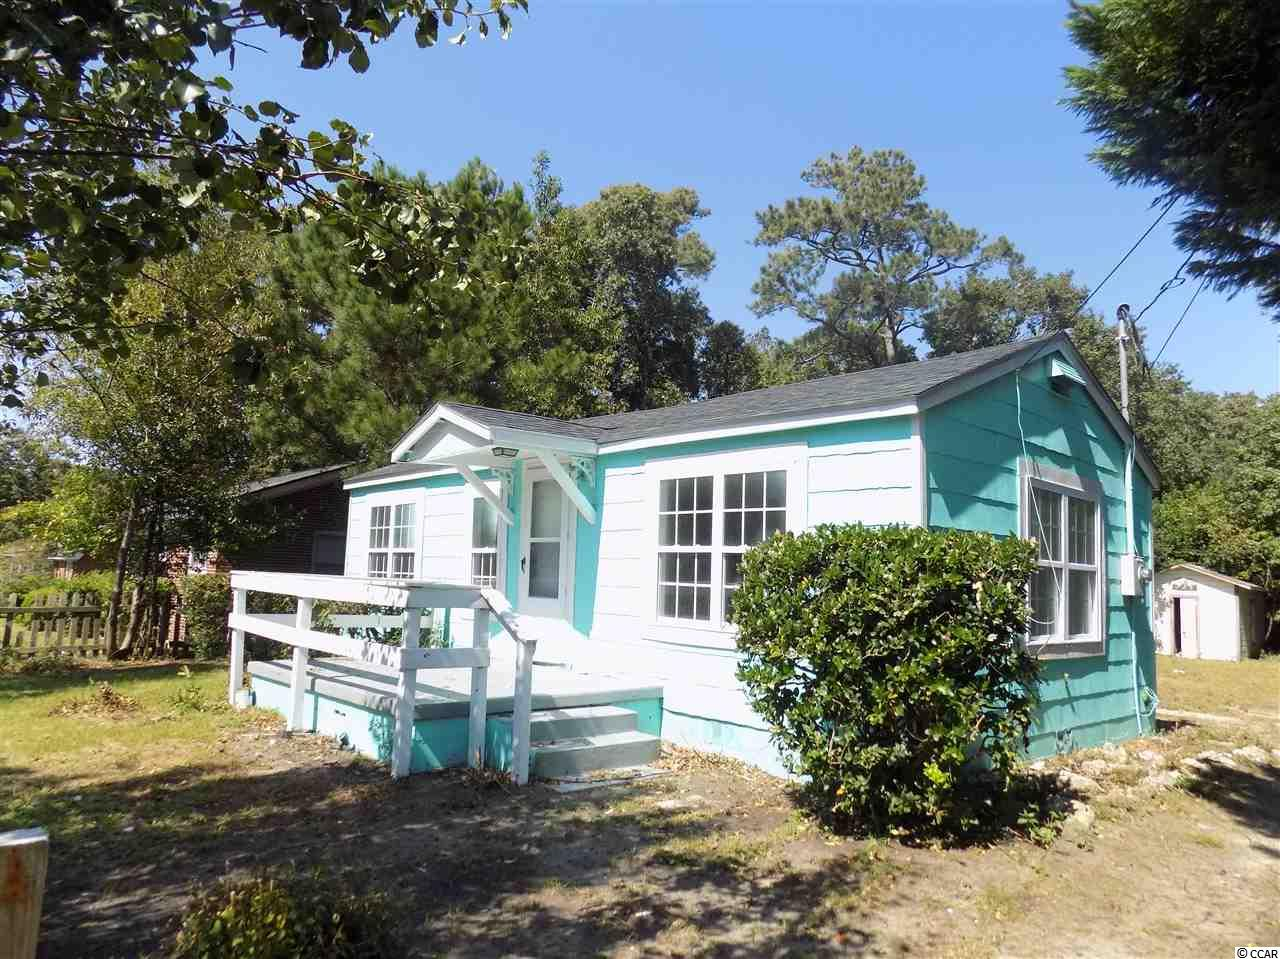 Not within a Subdivision house for sale in Myrtle Beach, SC